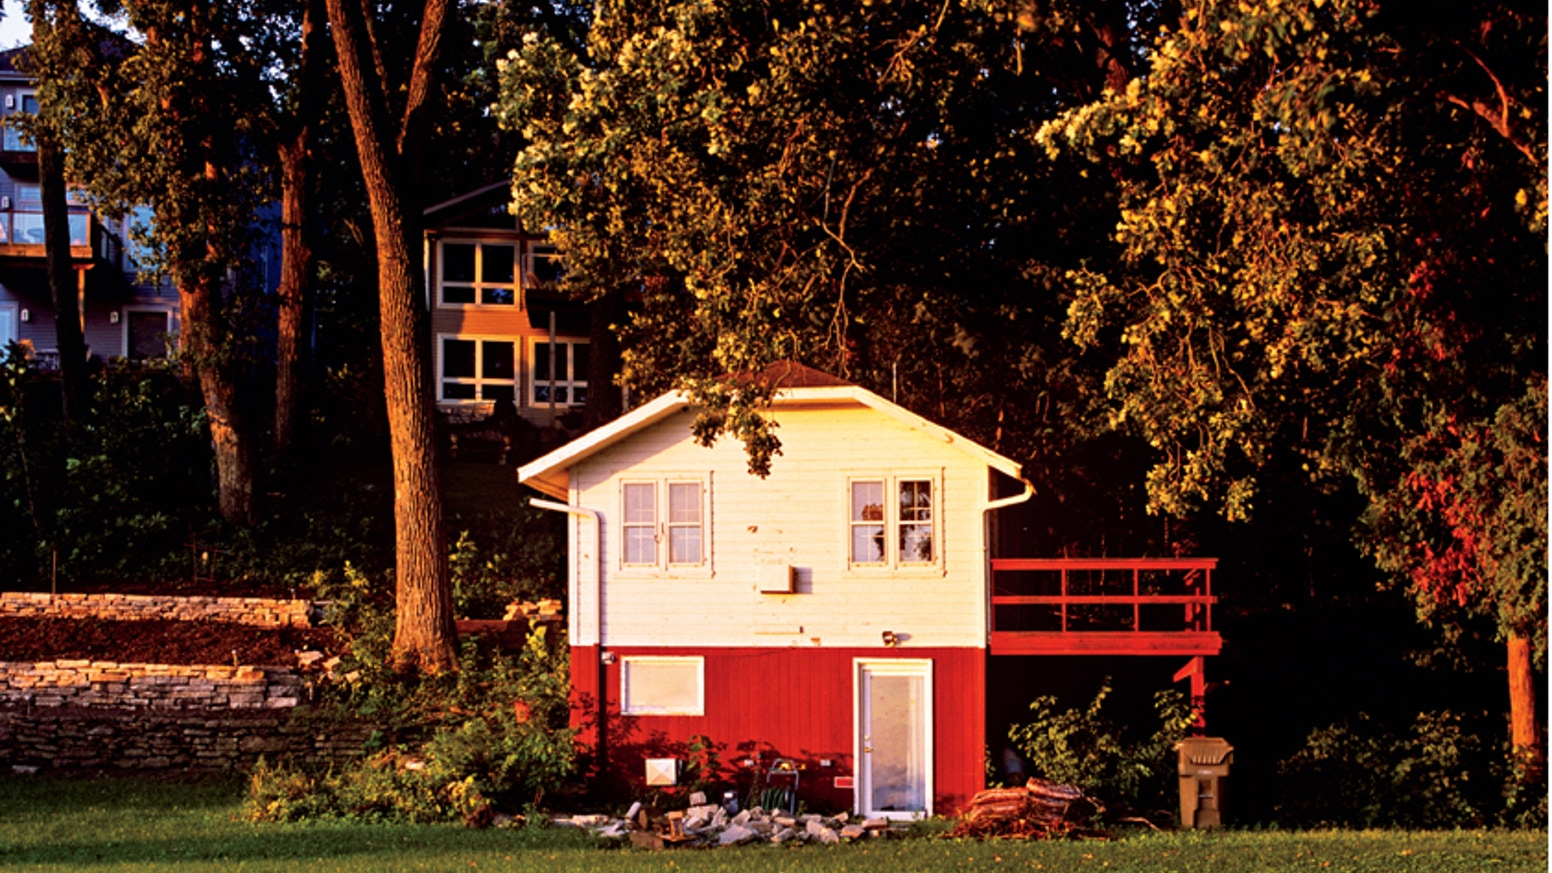 LITTLE HOUSE ON THE LAKE Hardcover Book by Jeff Strahl — Kickstarter